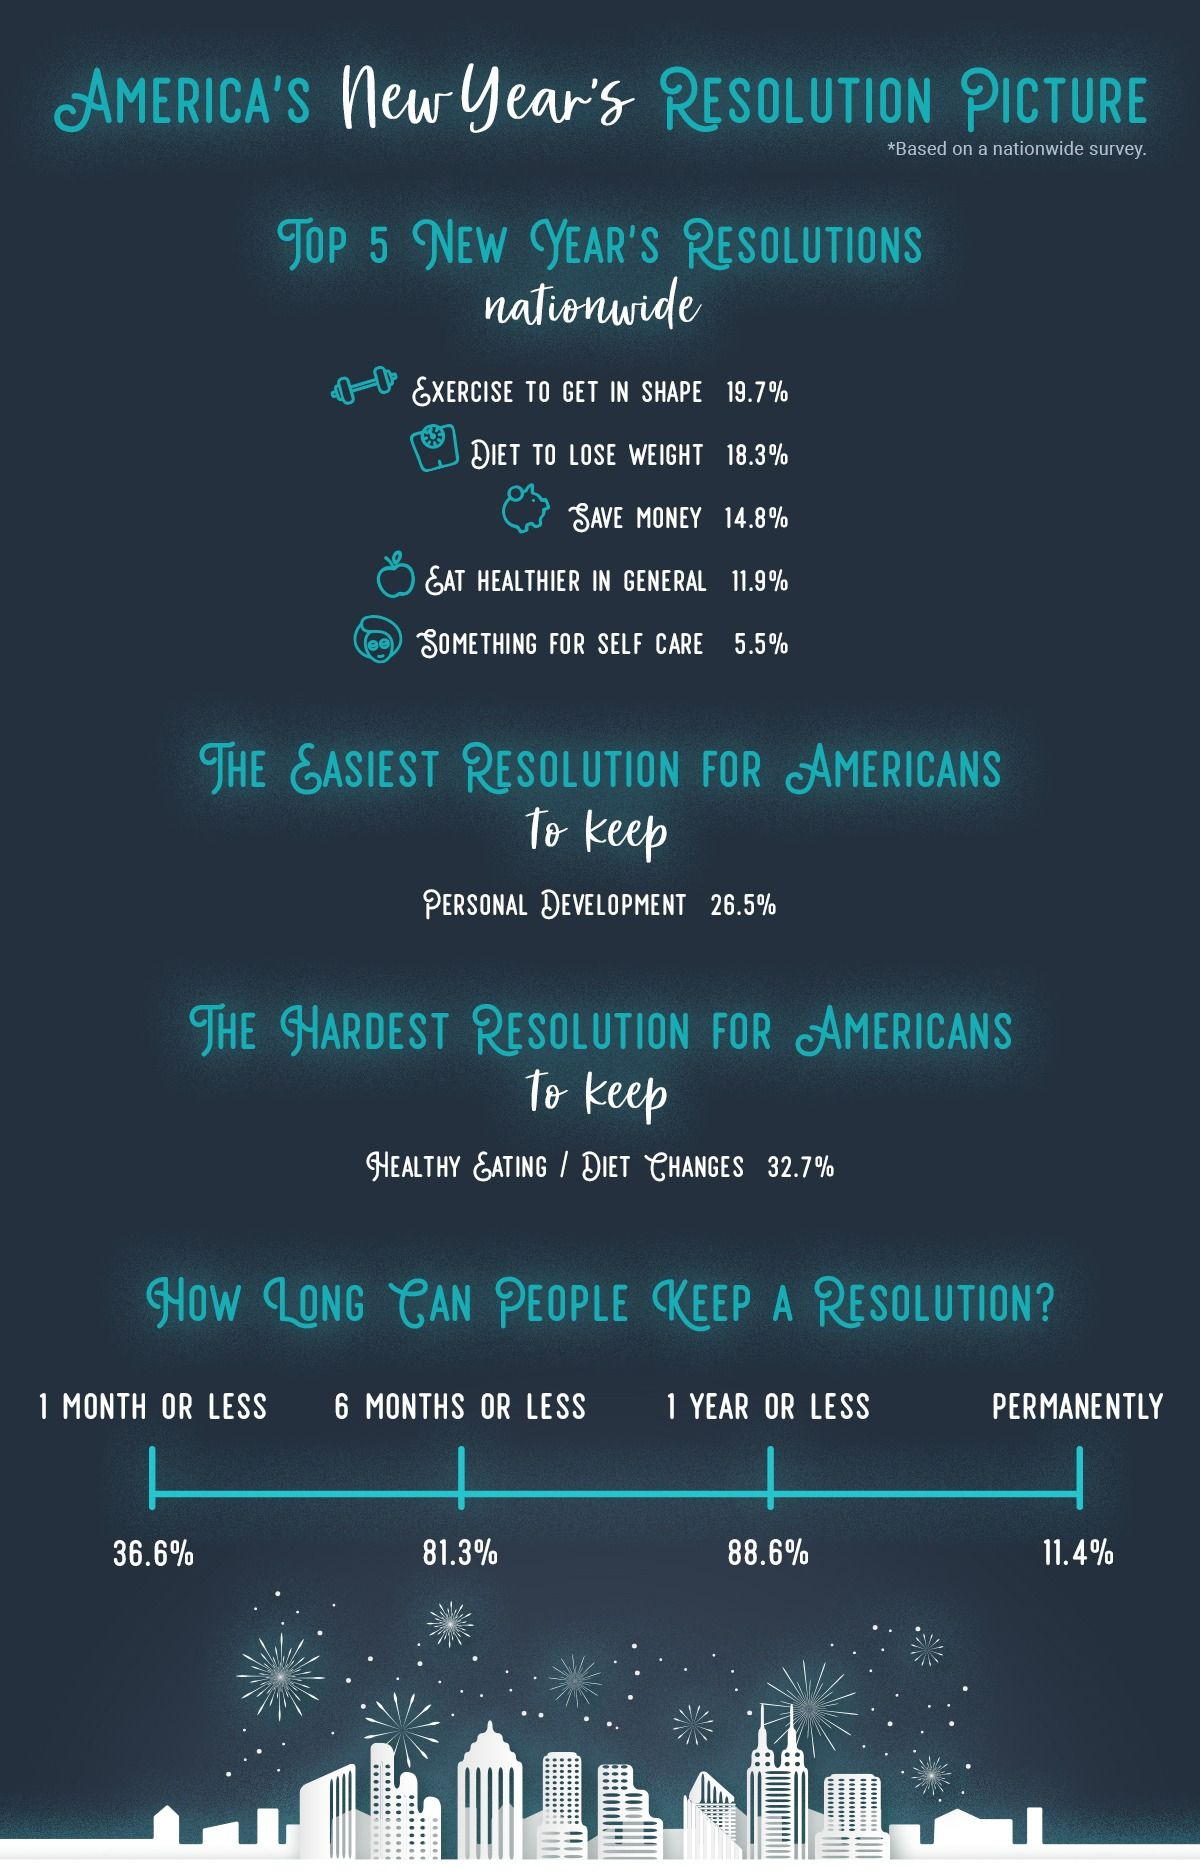 America's New Year's Resolutions graphic by vitagene.com